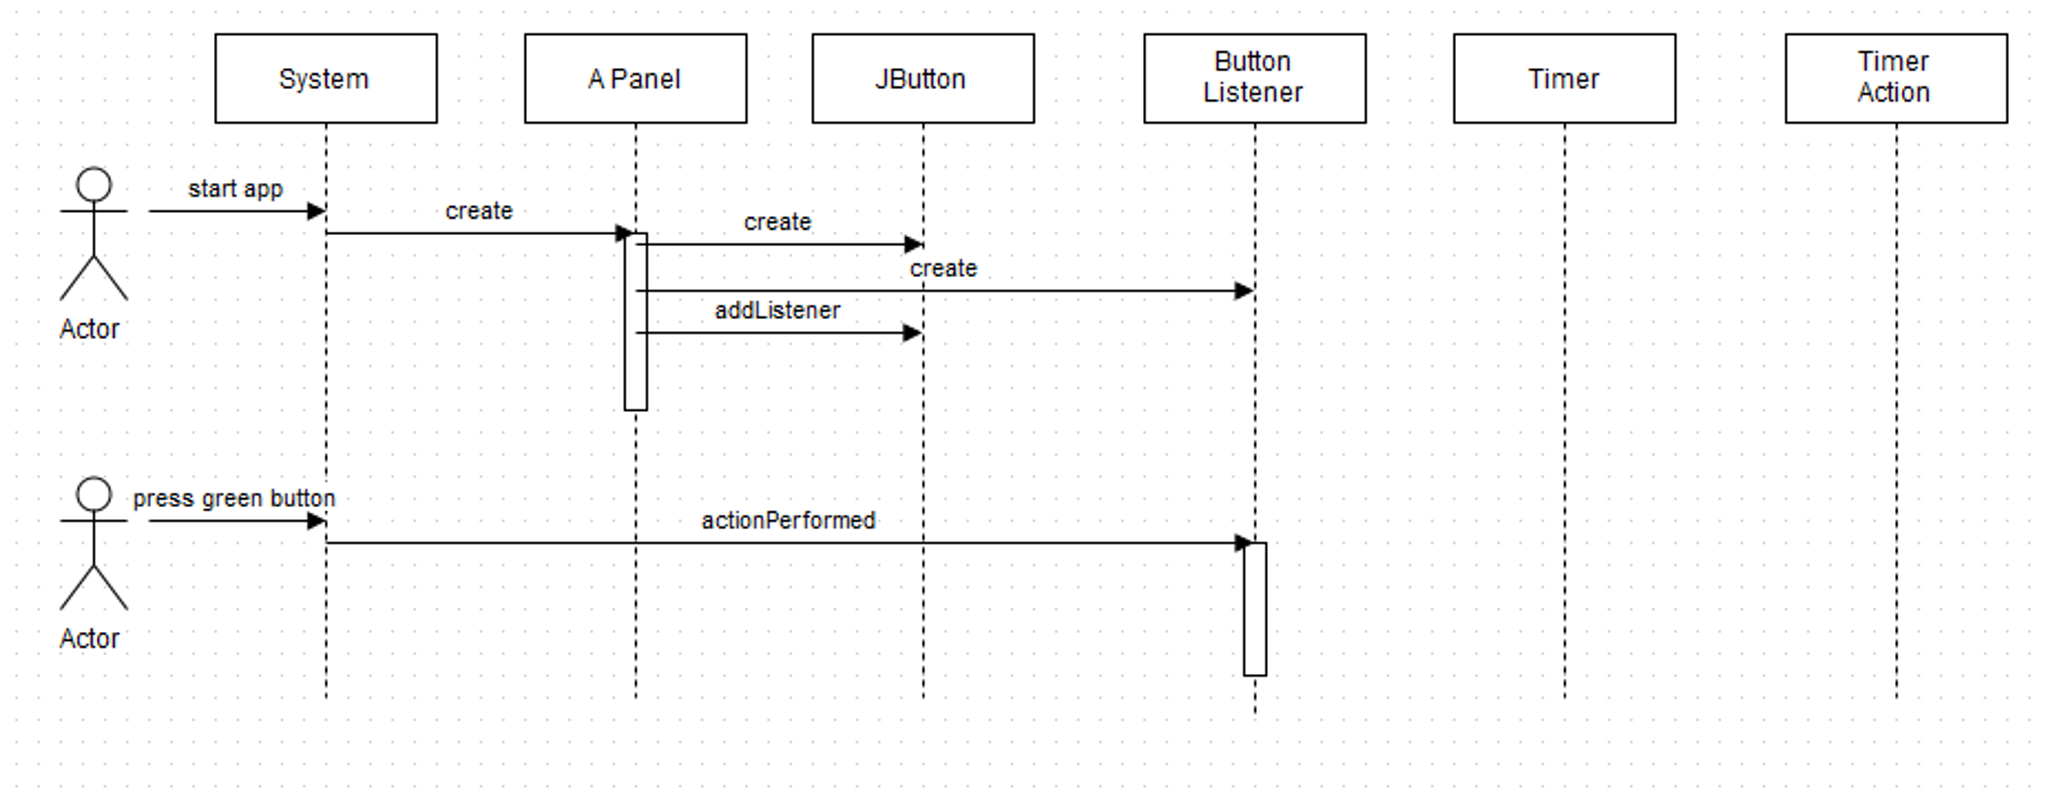 Uml Sequence Diagram | Solved 1 Complete The Uml Sequence Diagram Below That Ex